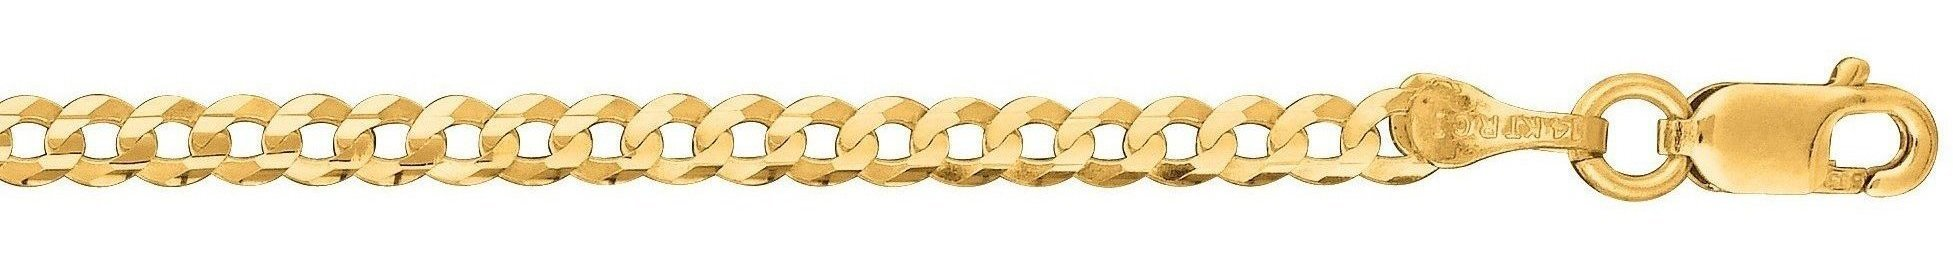 "16"" 14K Yellow Gold 2.6mm (1/10"") Polished Diamond Cut Comfort Curb Chain w/ Lobster Clasp"